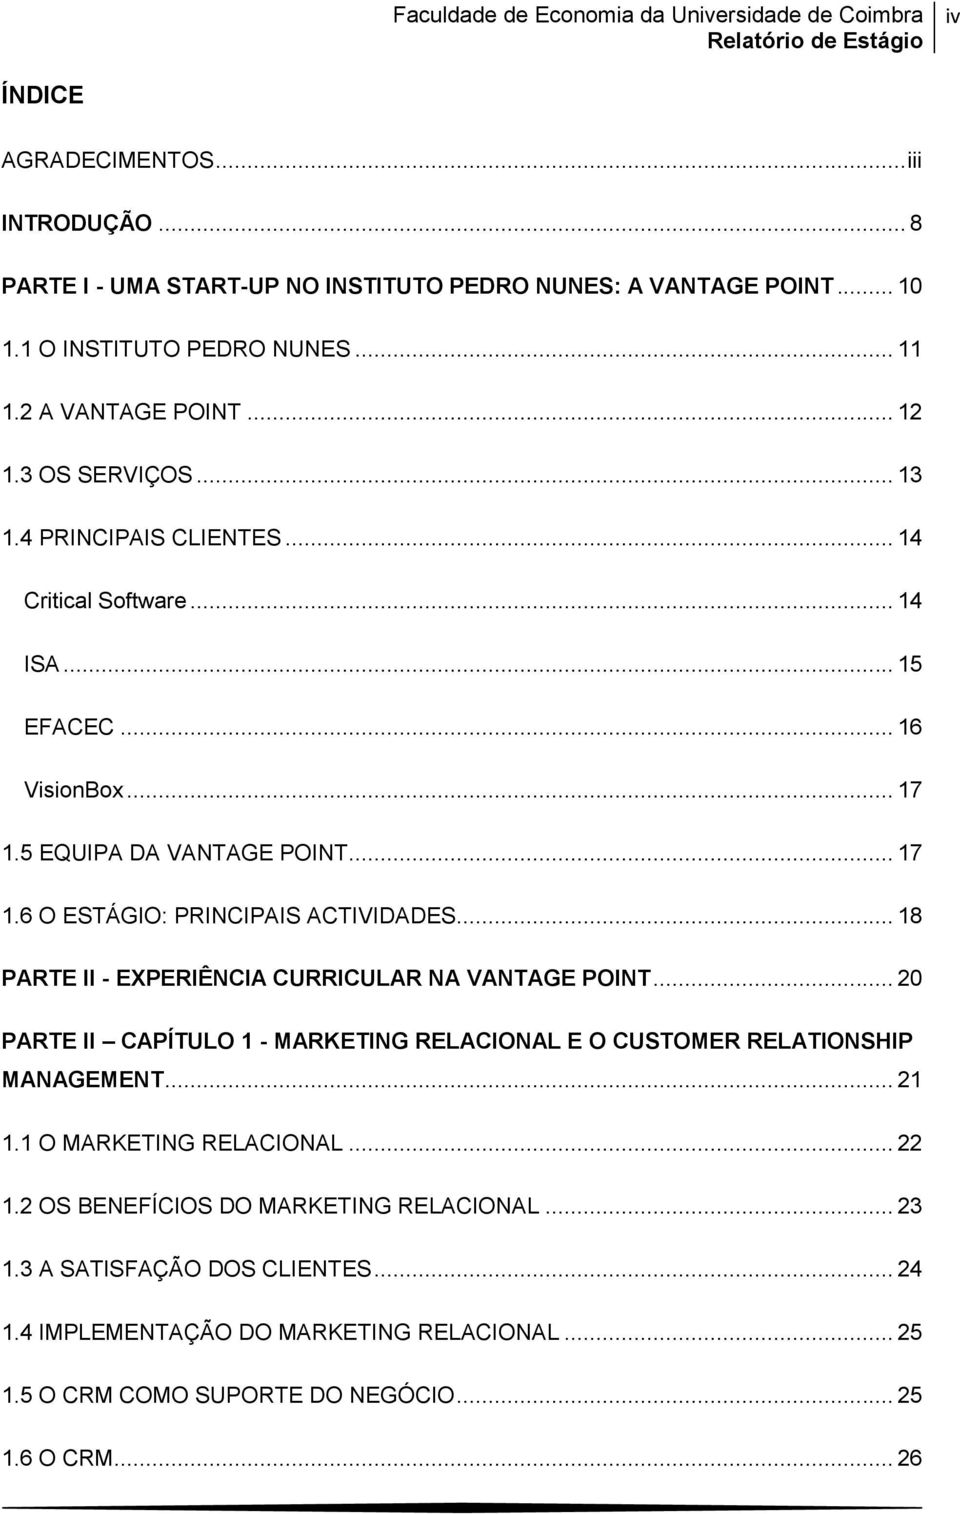 .. 18 PARTE II - EXPERIÊNCIA CURRICULAR NA VANTAGE POINT... 20 PARTE II CAPÍTULO 1 - MARKETING RELACIONAL E O CUSTOMER RELATIONSHIP MANAGEMENT... 21 1.1 O MARKETING RELACIONAL... 22 1.